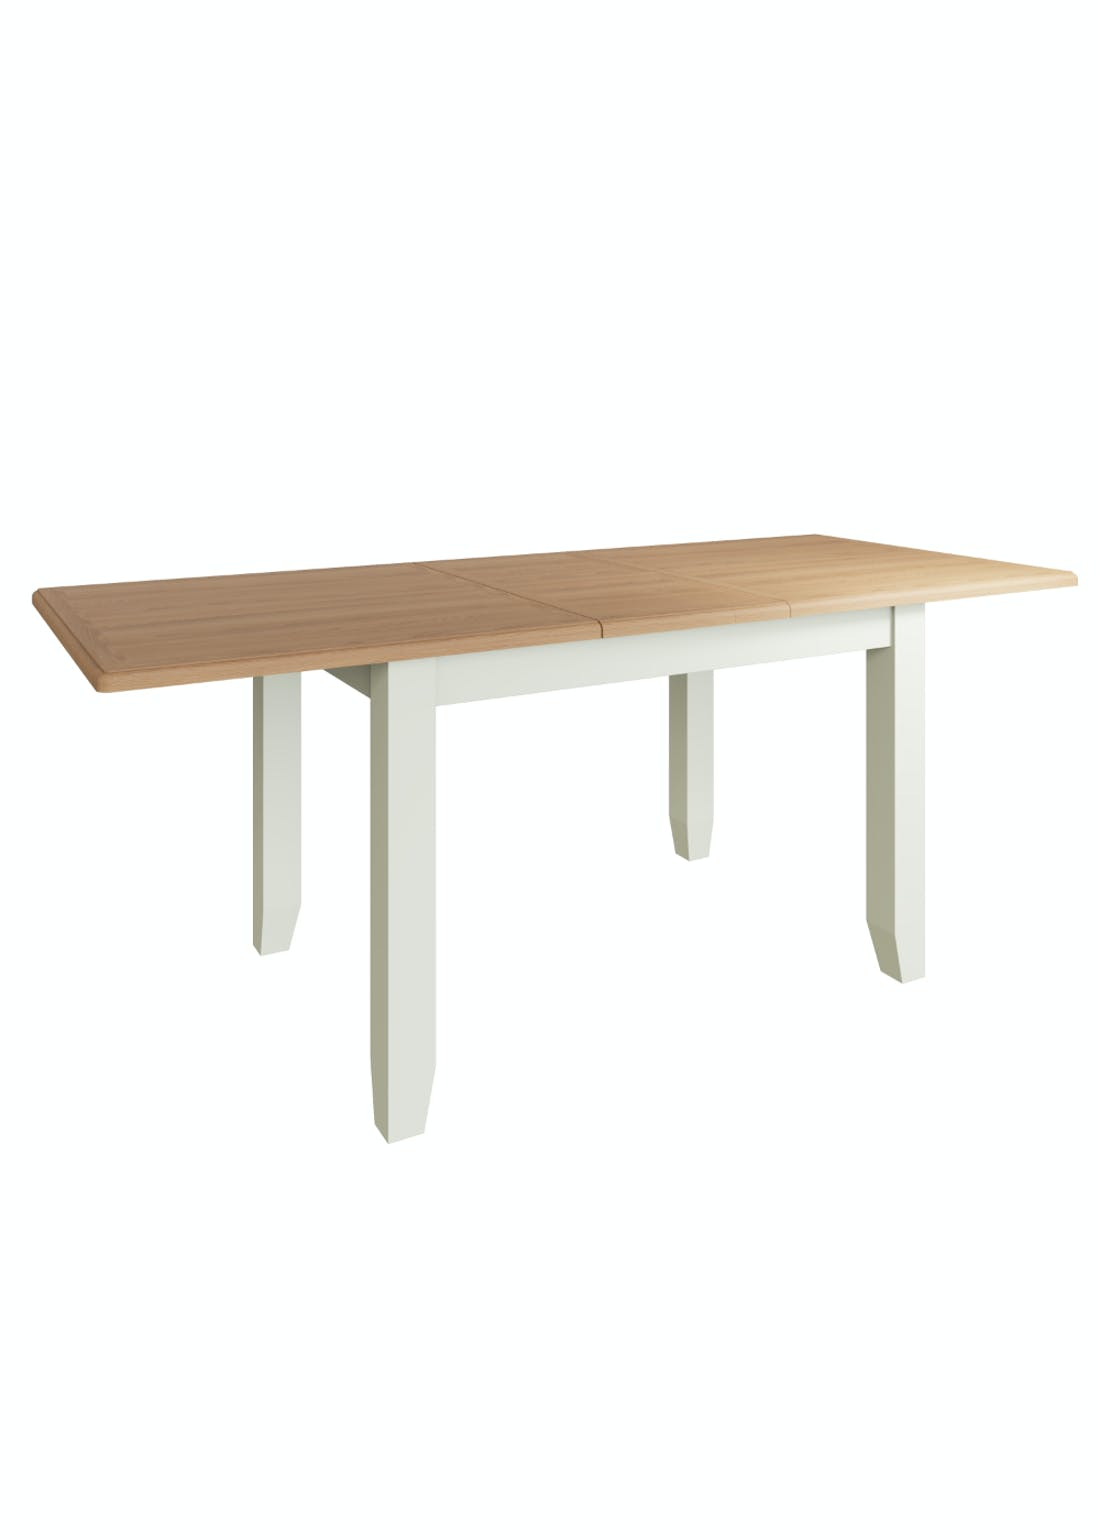 Interiors Direct Grayson Butterfly Extending Table (160cm-200cm x 85cm x 78cm)